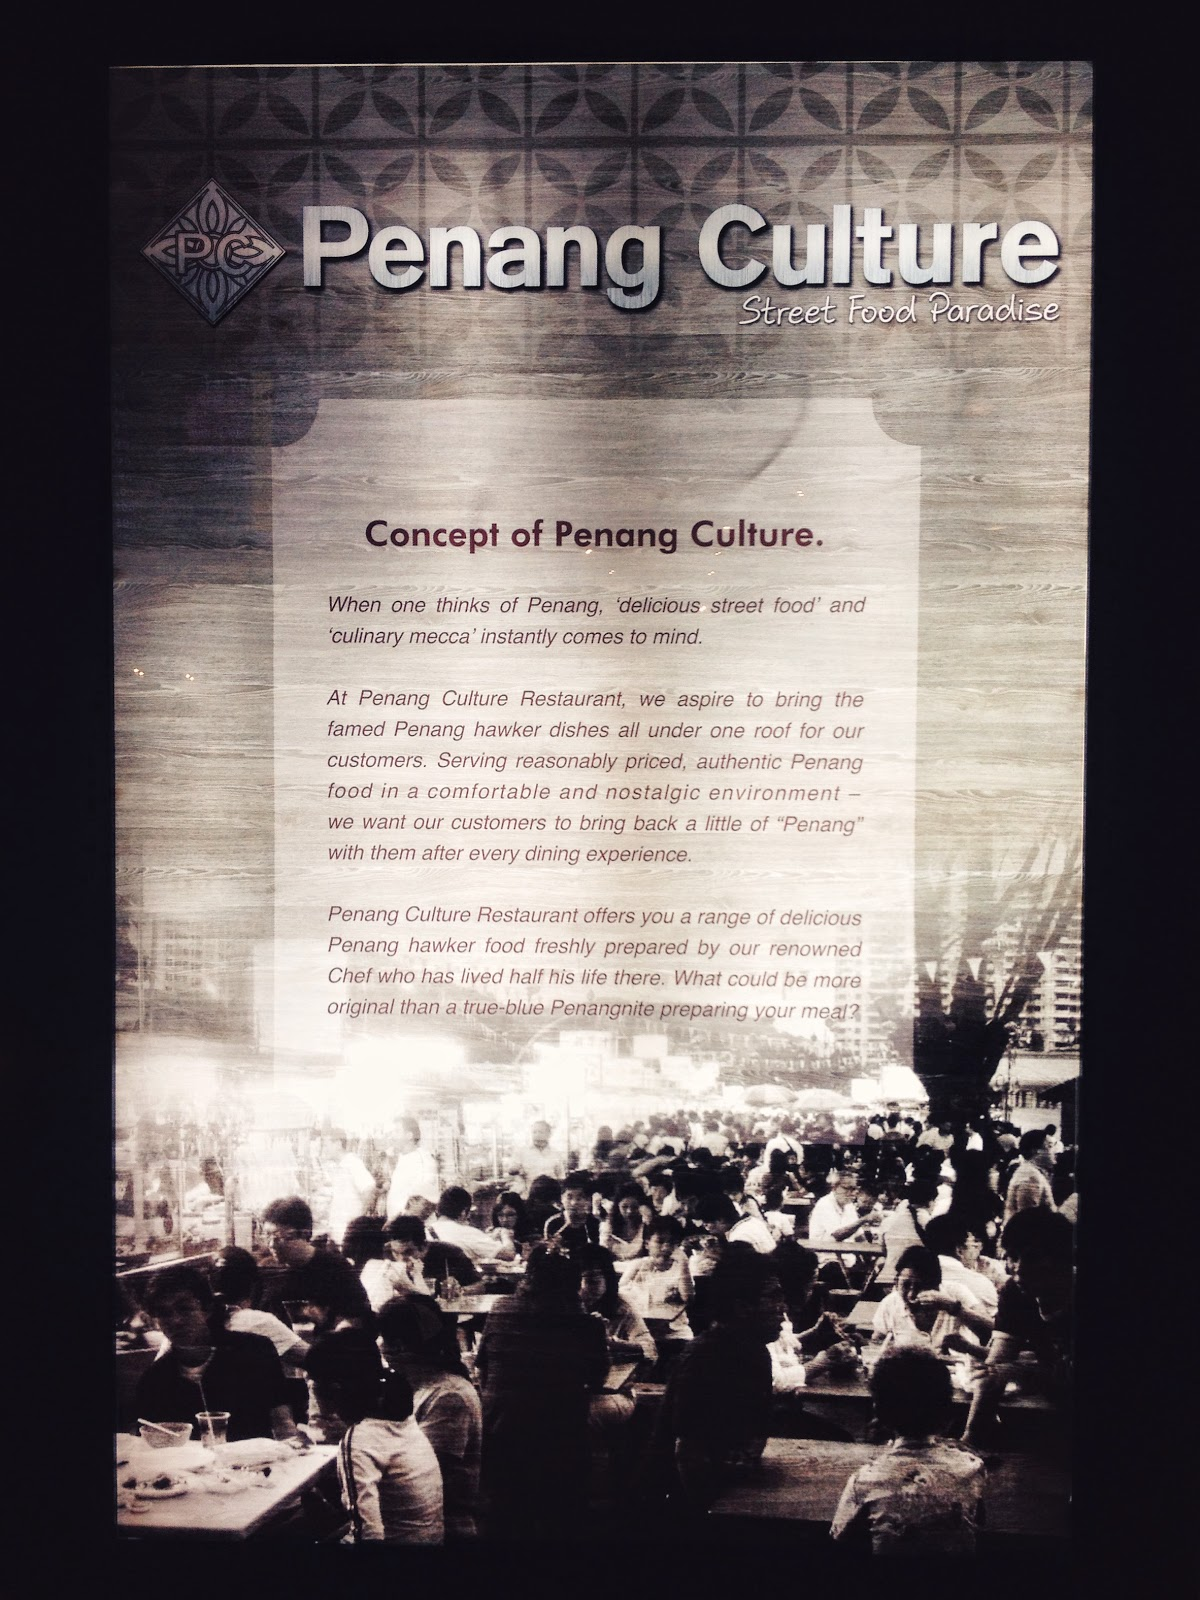 Penang Culture @ Changi Airport, Singapore